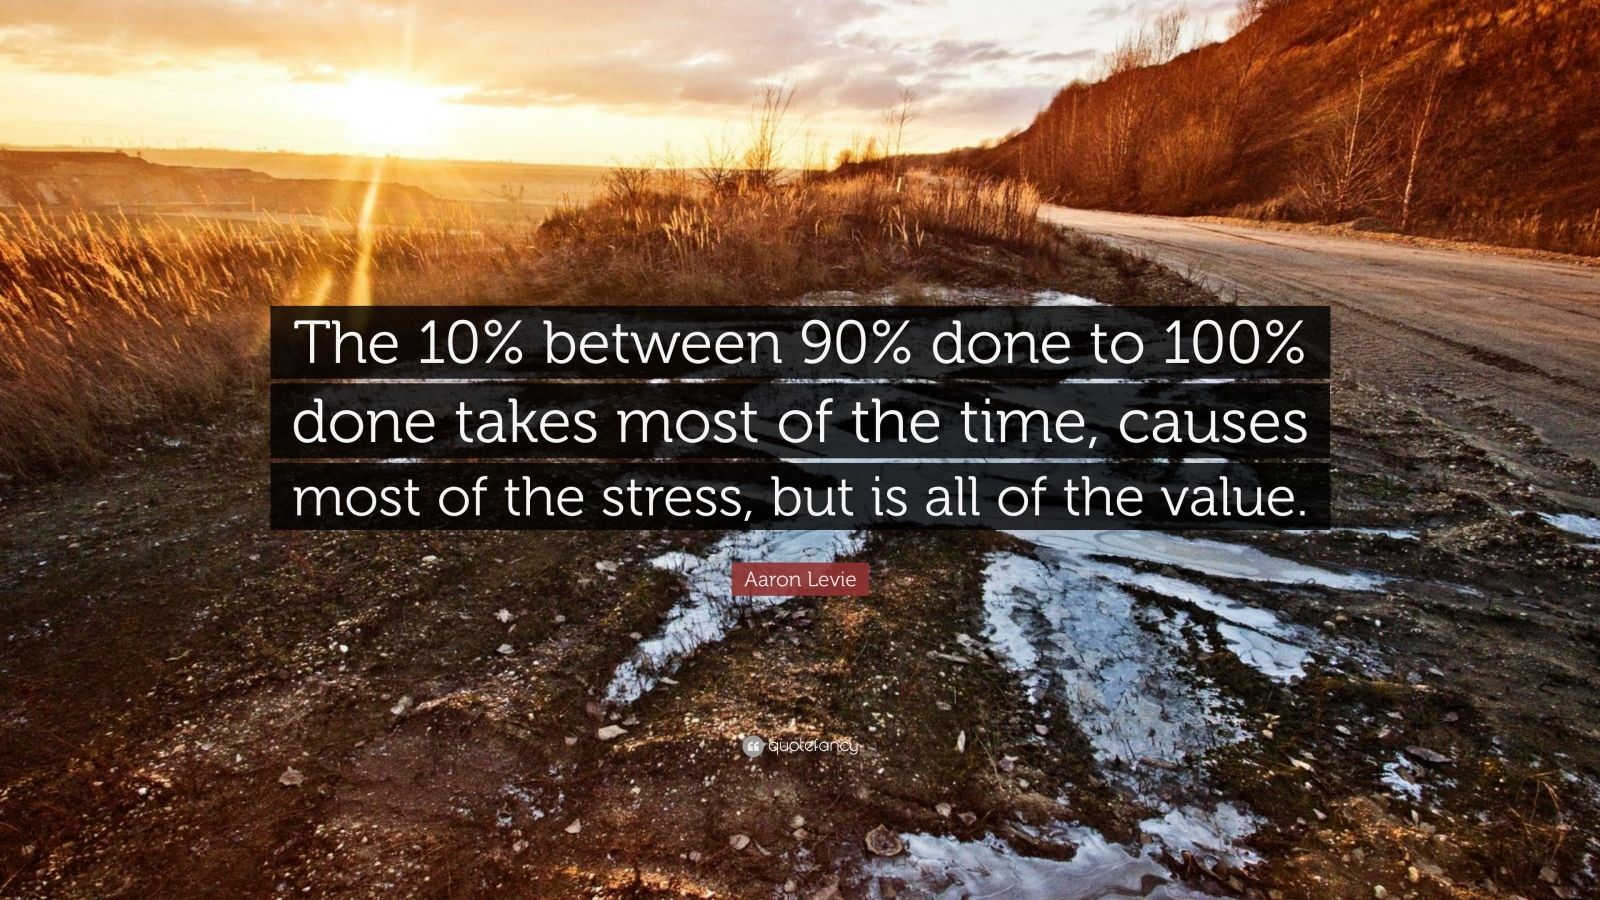 """Aaron Levie Quote: """"The 10% between 90% done to 100% done takes most of the time, causes most of the stress, but is all of the value."""""""